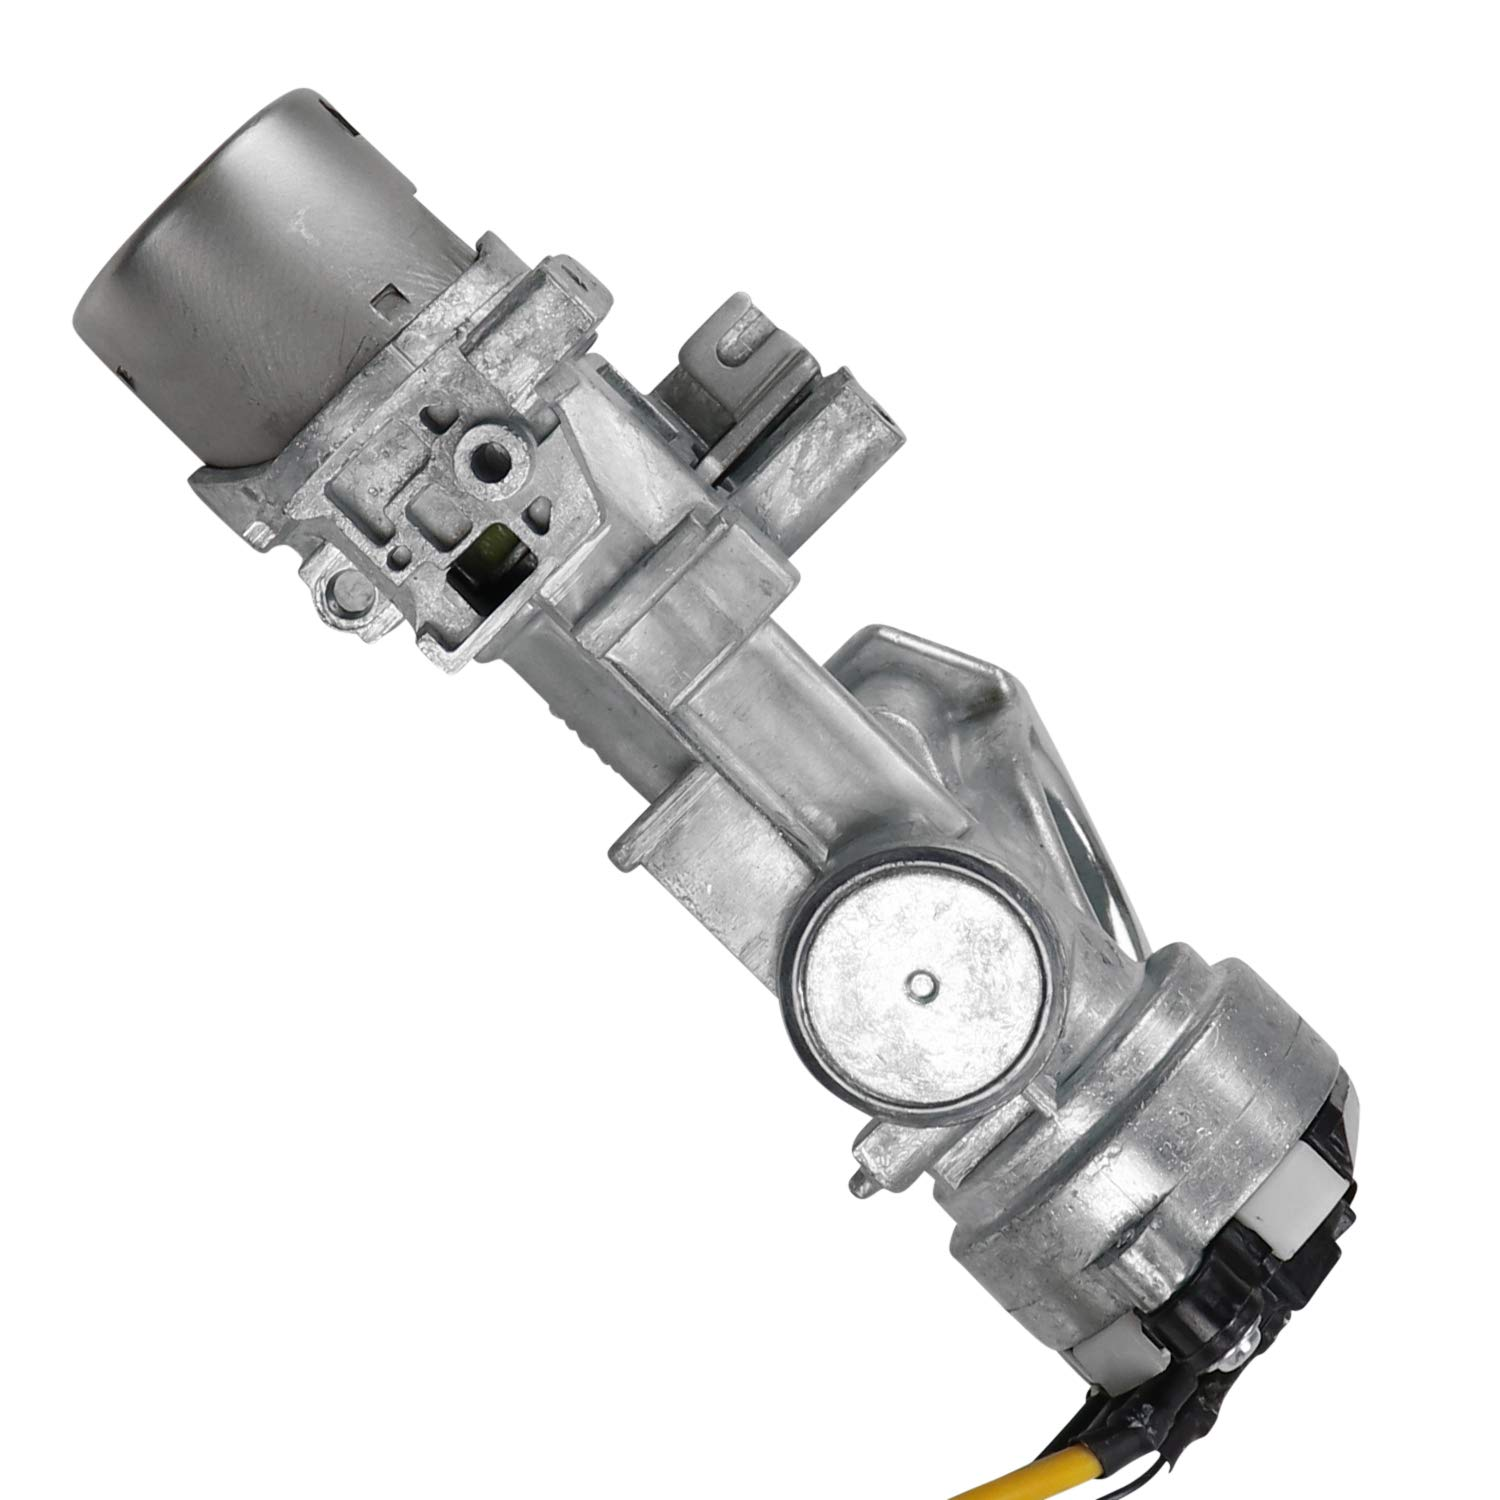 Beck Arnley 201-1856 Ignition Lock Assembly